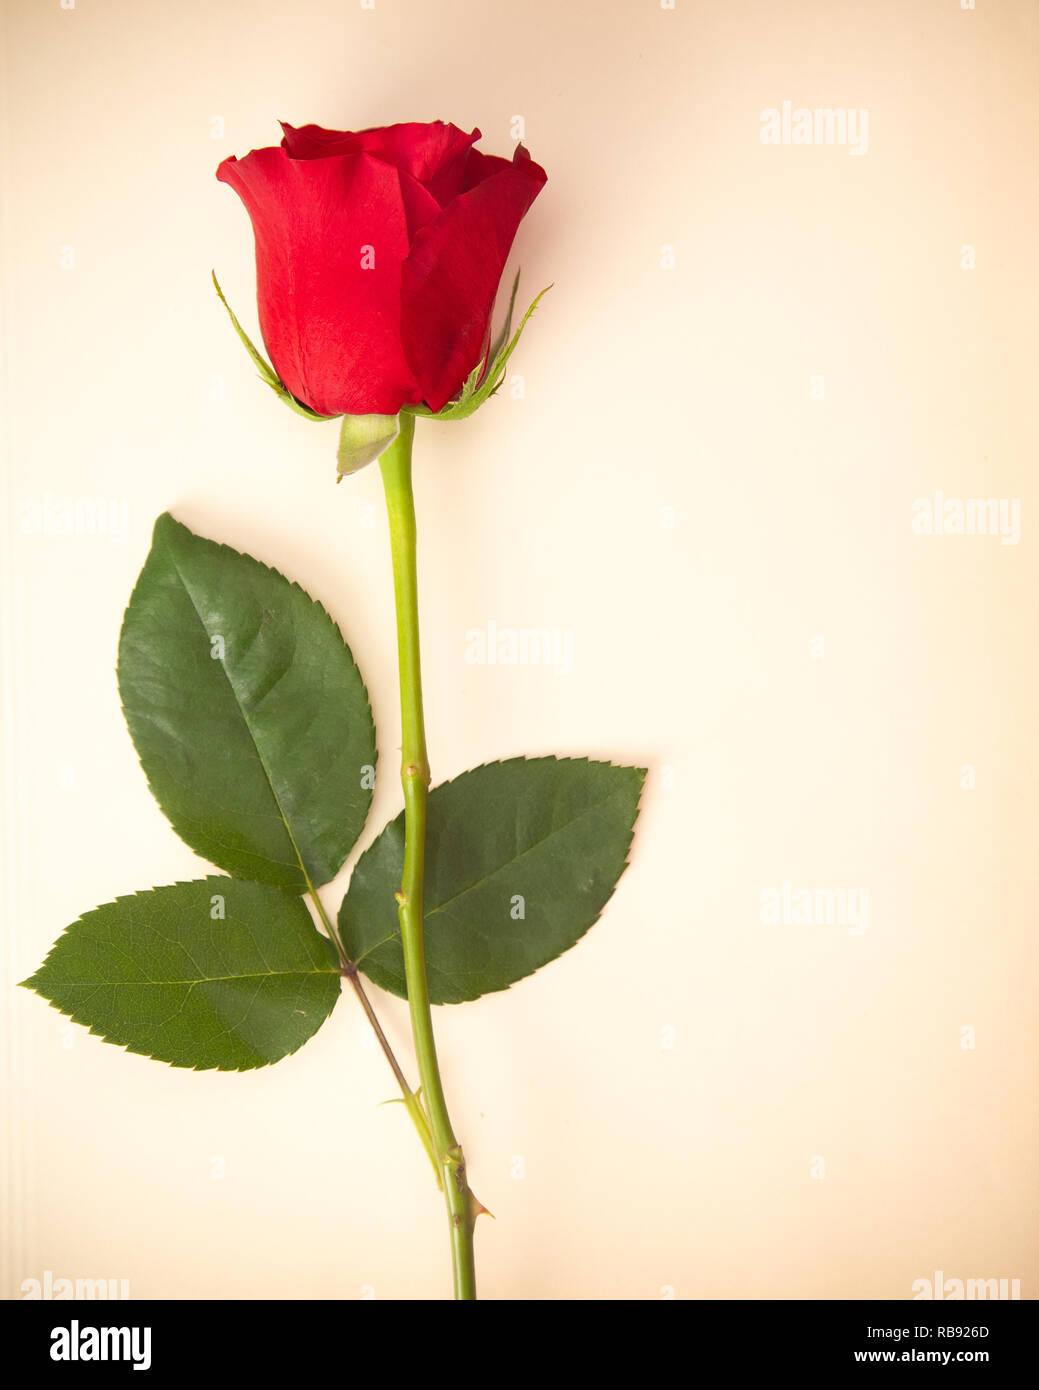 A Single Rose on a Piece o Antiqued Paper - Stock Image